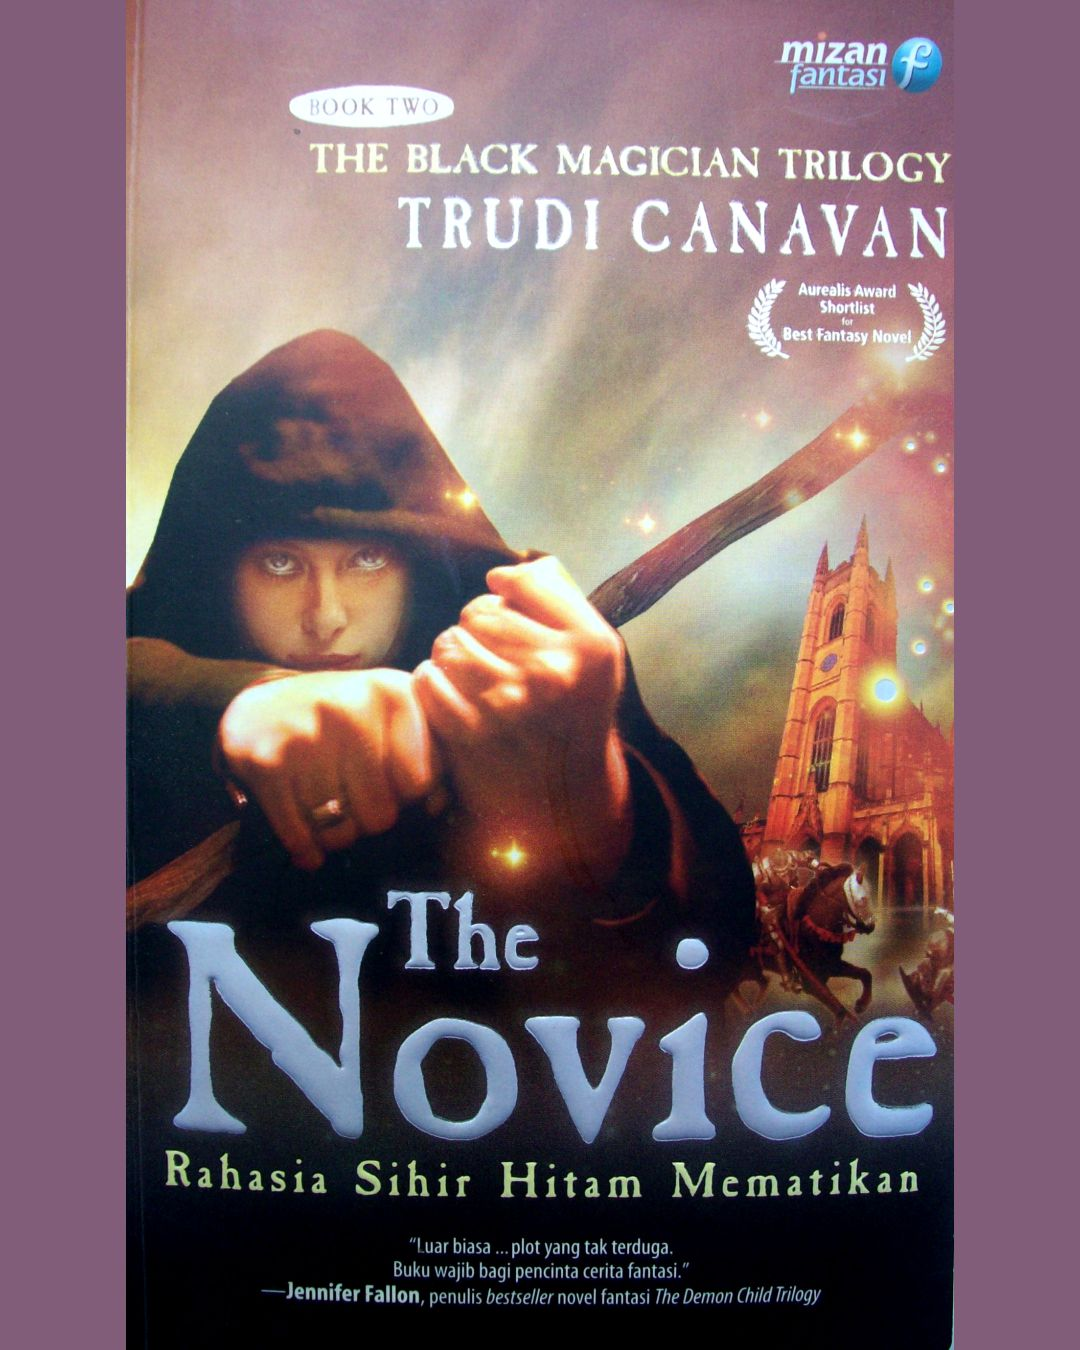 The Novice: Rahasia Sihir Hitam Mematikan